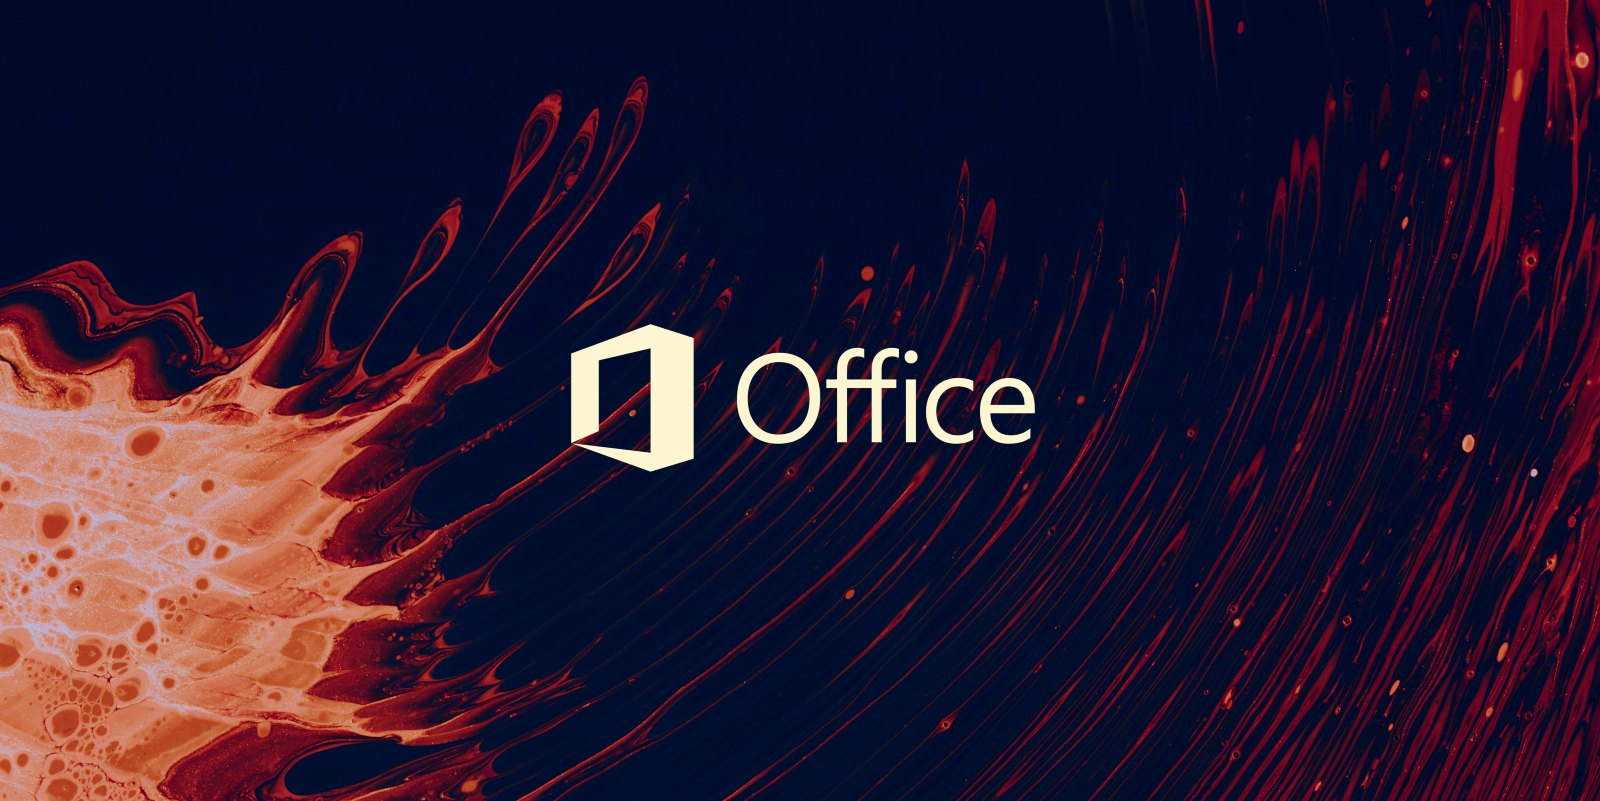 Microsoft Office July updates fix Outlook crashes, performance issues